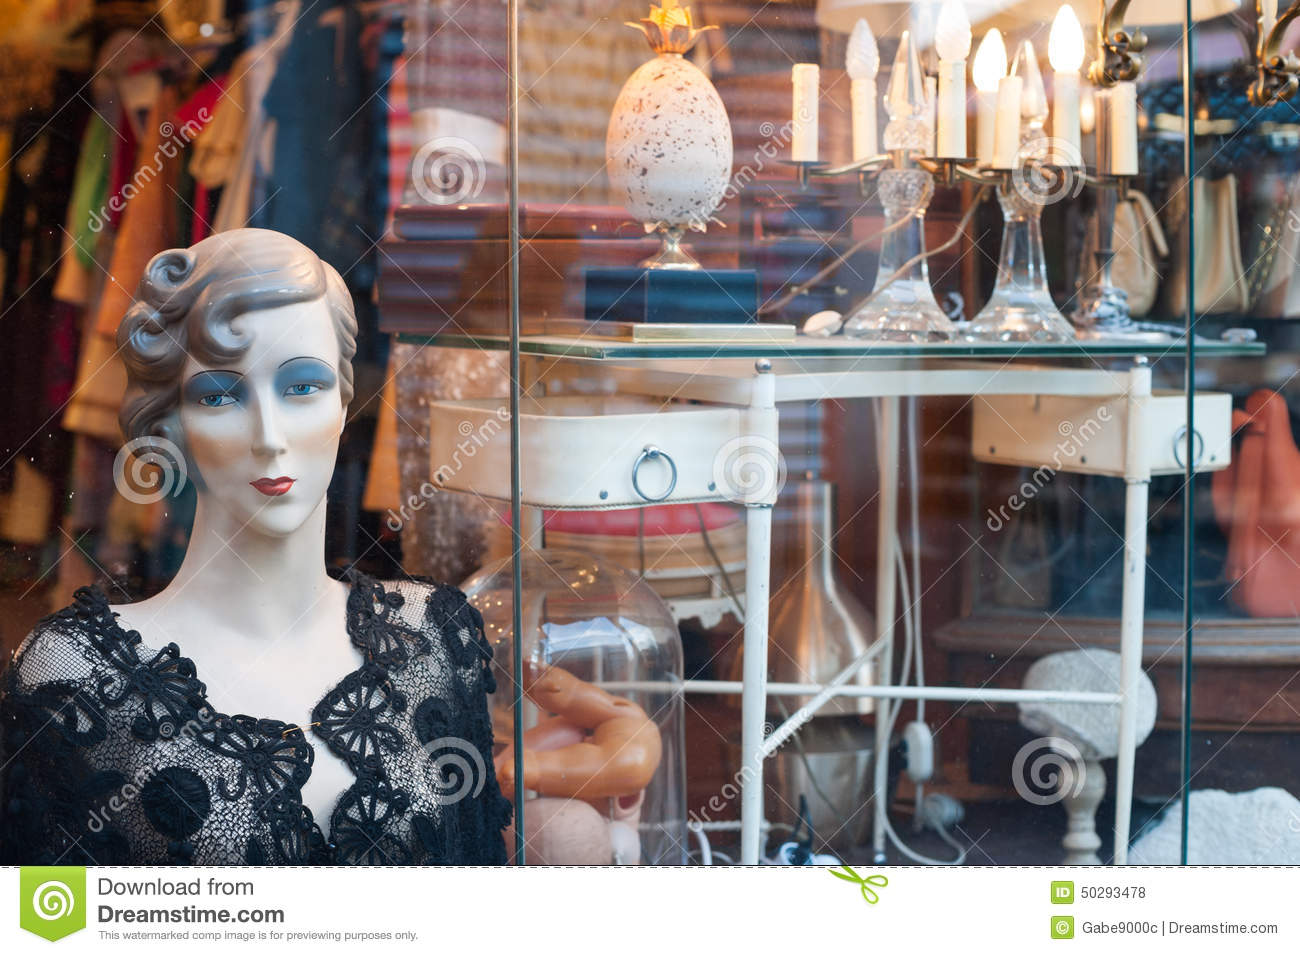 Articles de vintage vendre au march aux puces st ouen paris photo stock ditorial image - Marche au puce paris vetement ...